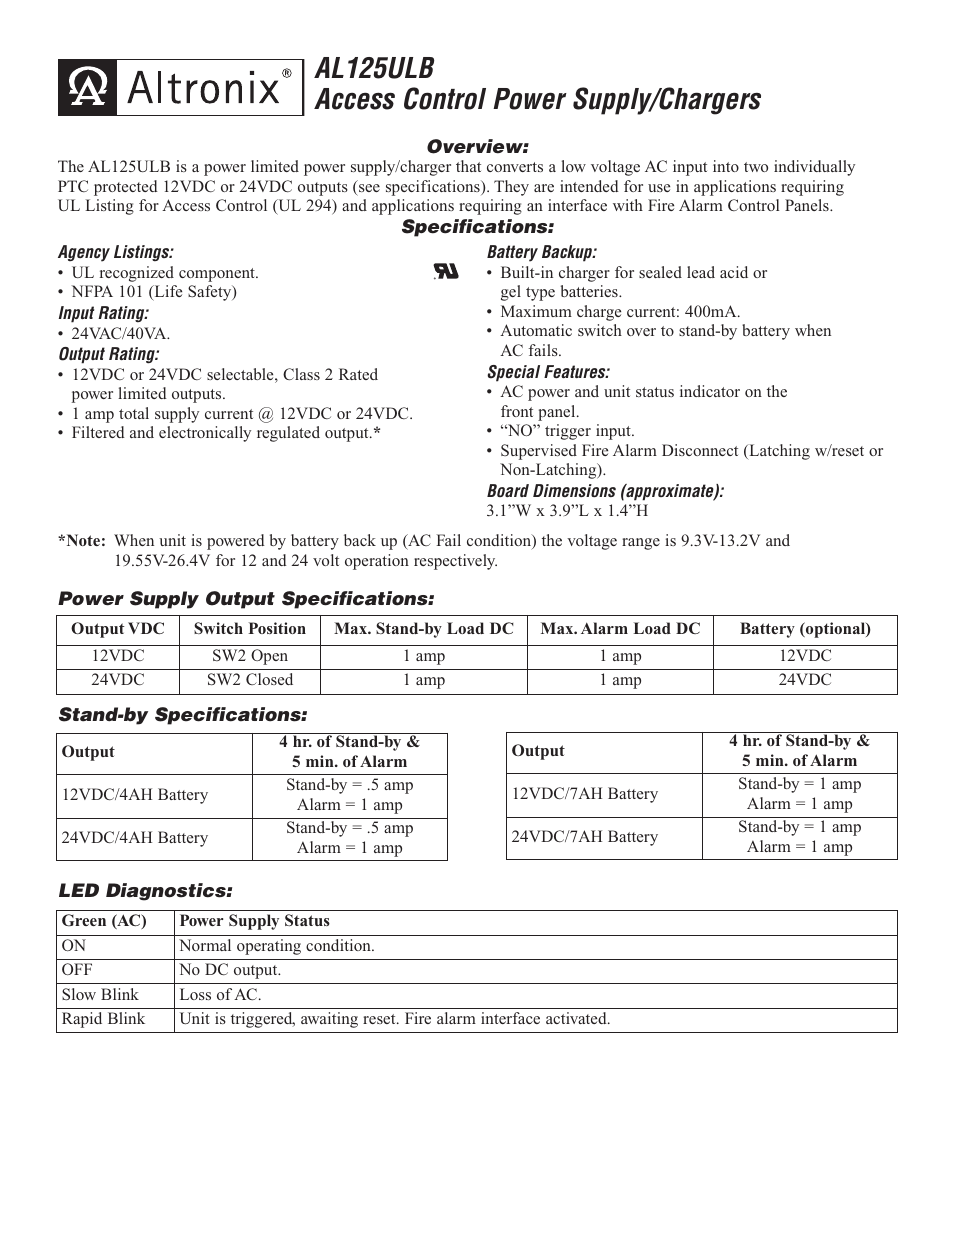 Altronix Al125ulb Installation Instructions User Manual 2 Pages 12vdc 125 Amp Regulated Switching Power Supply